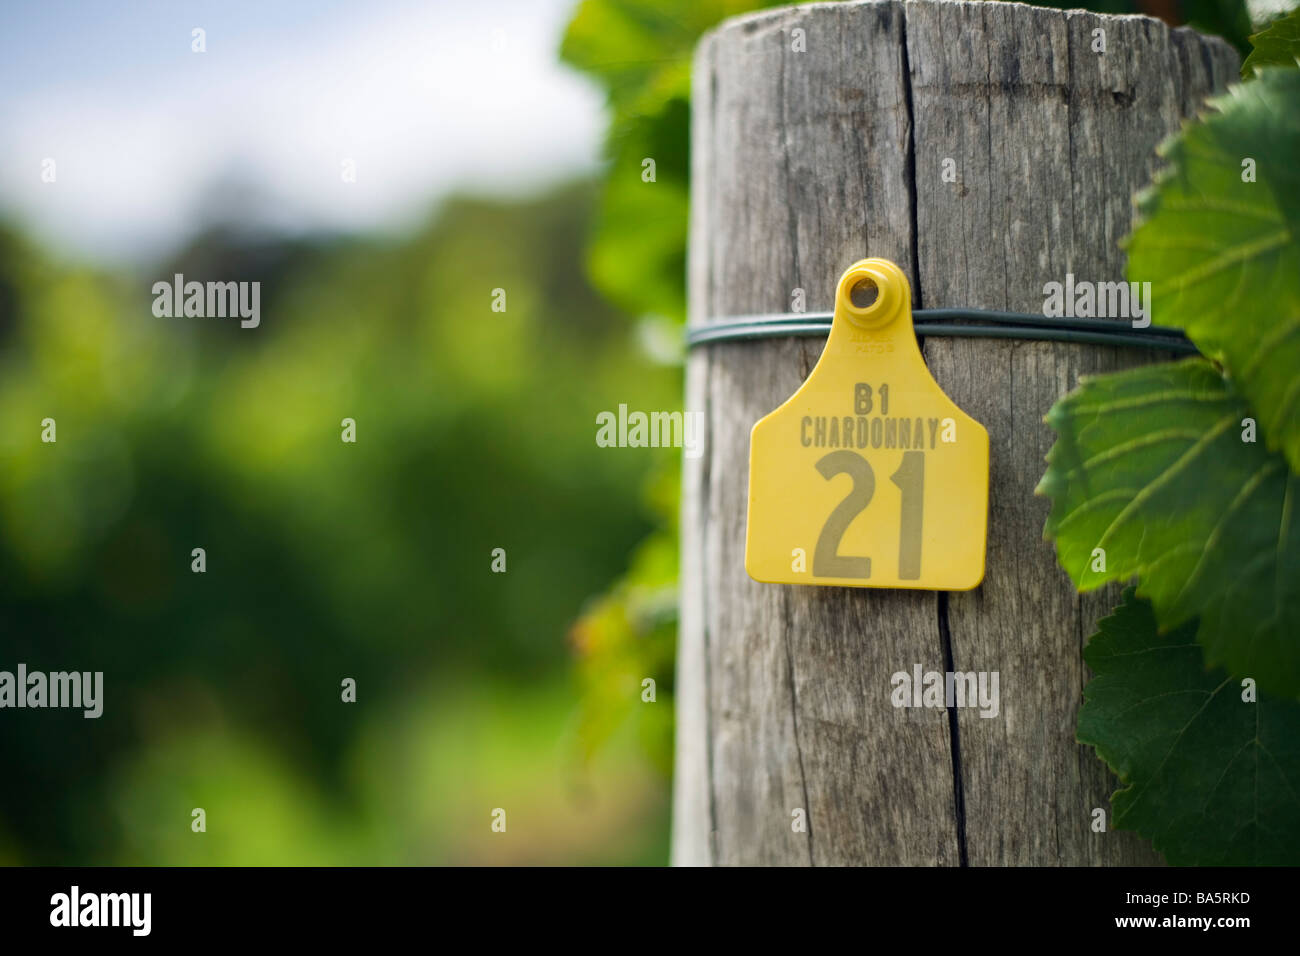 Chardonnay grape vines in the renowned wine region of Margaret River, Western Australia, AUSTRALIA - Stock Image